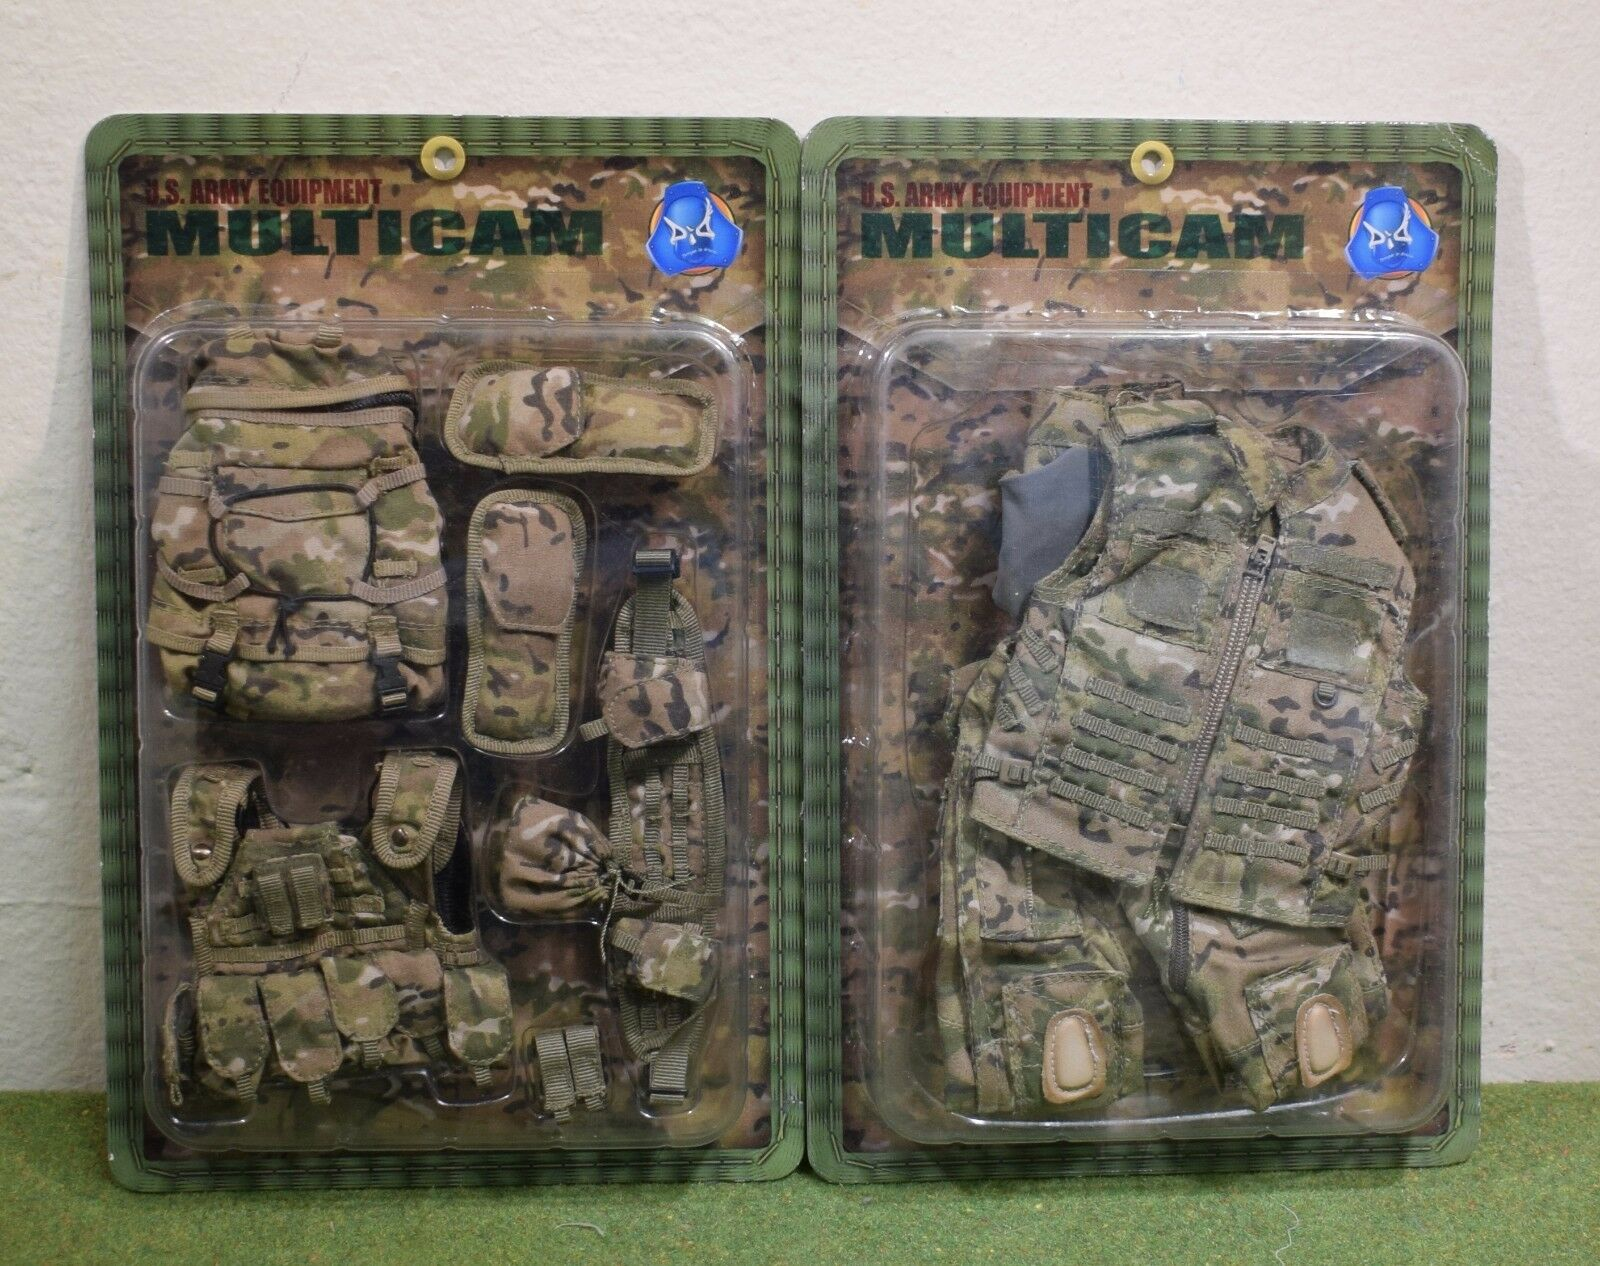 DRAGON DREAMS 1 6 MODERN US CARDED ARMY EQUIPMENT MULTICAM E60055 & E60056